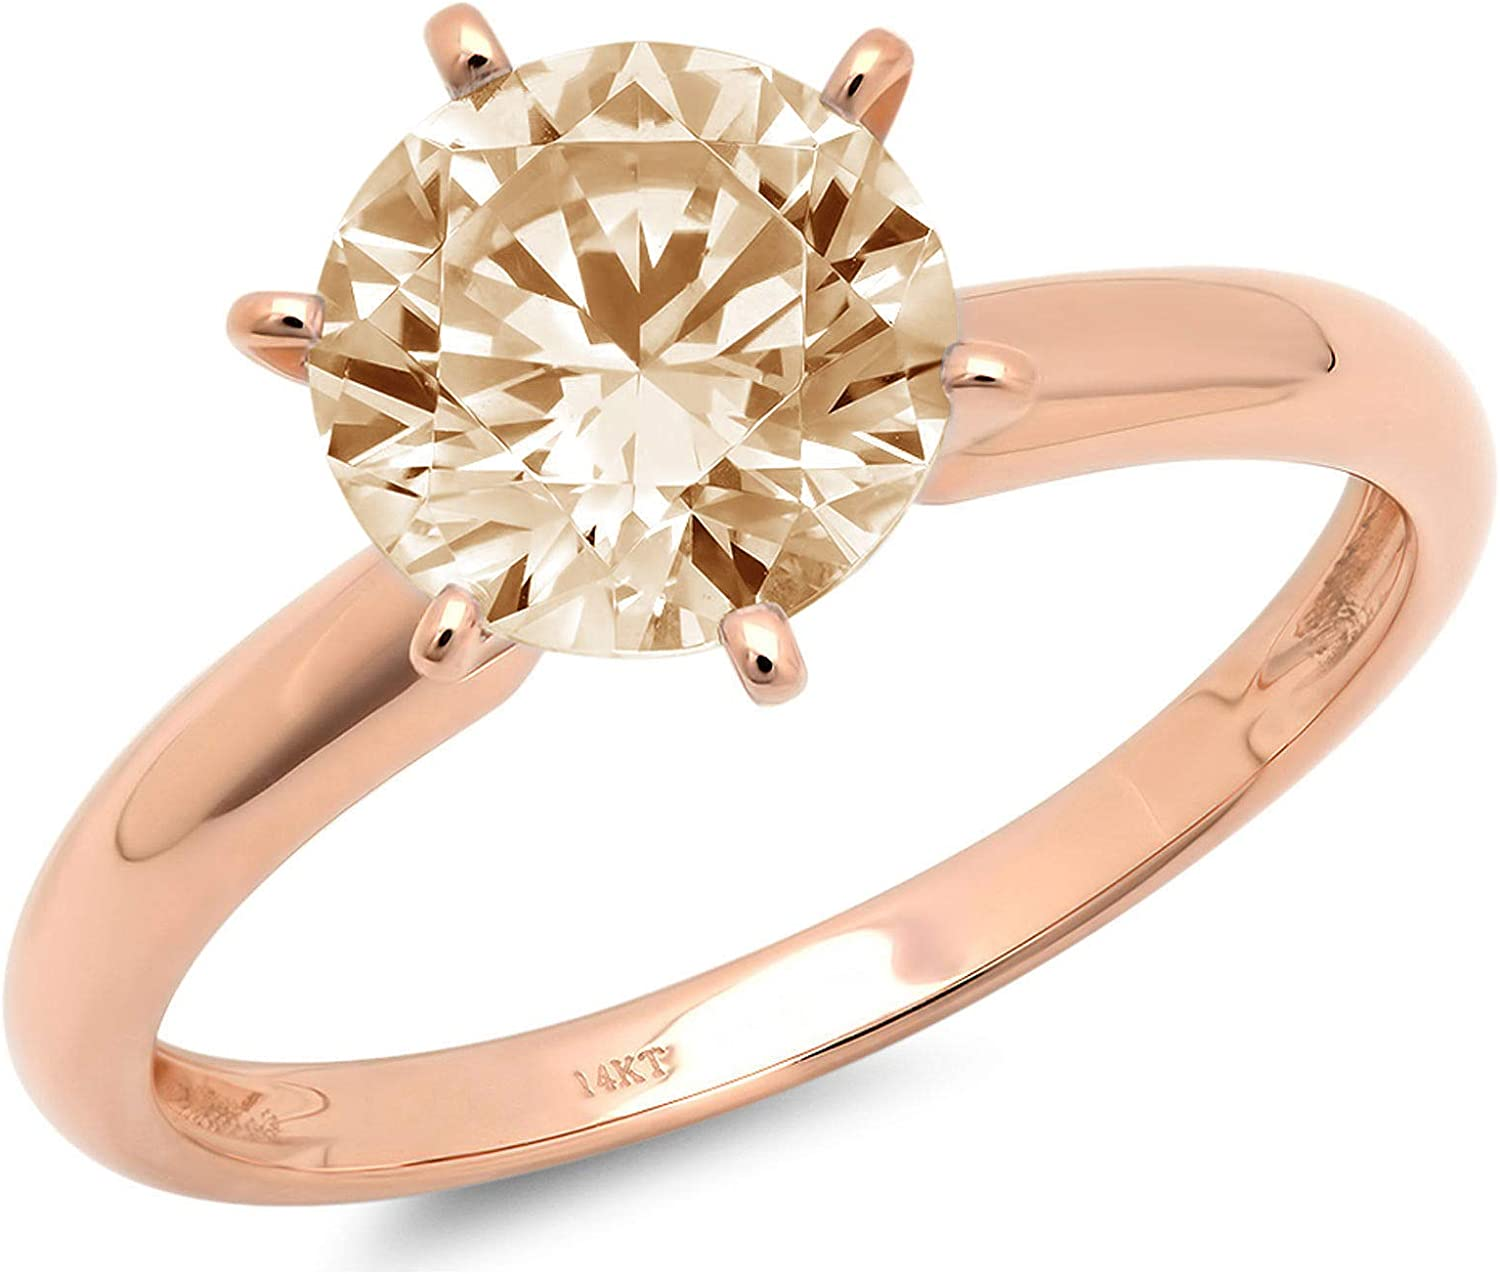 2.45 ct Round Cut Solitaire Simulated Yellow Moissanite CZ Excellent VVS1 6-prong Engagement Wedding Bridal Promise Anniversary Designer Ring Solid 18K Rose Gold for Women